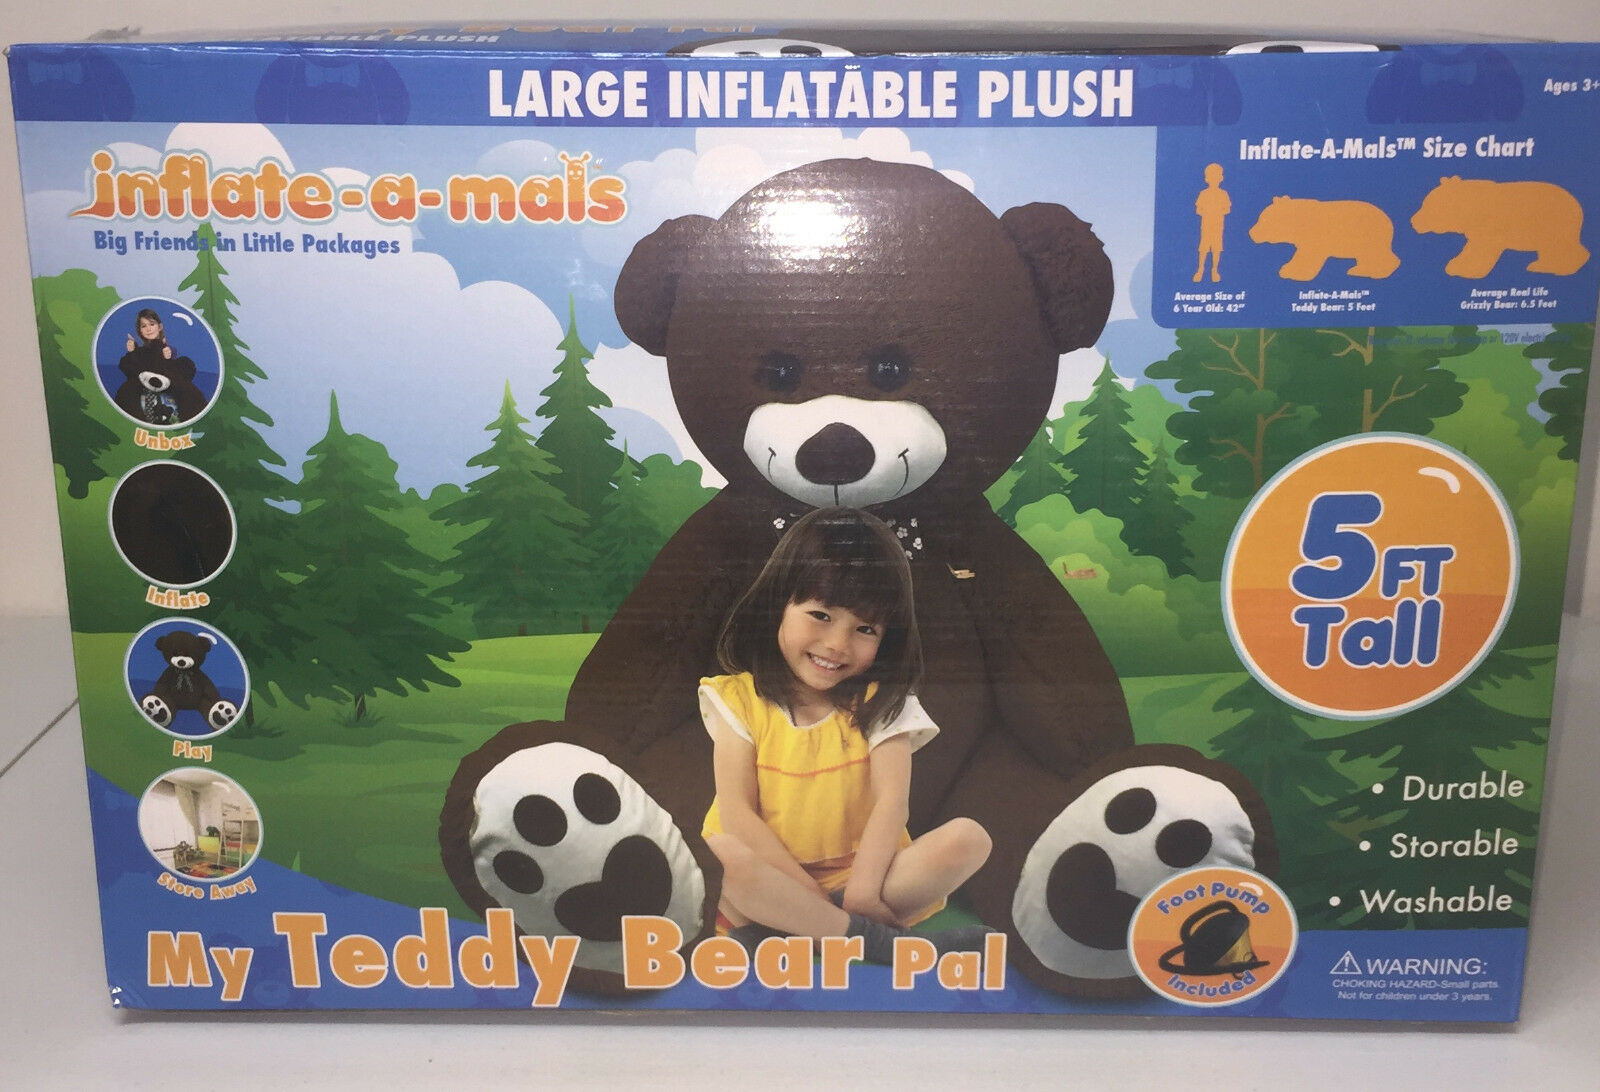 NIB Giant Plush Inflatable Teddy Bear Pals Animal Toy Blow Up Inflate A Mals